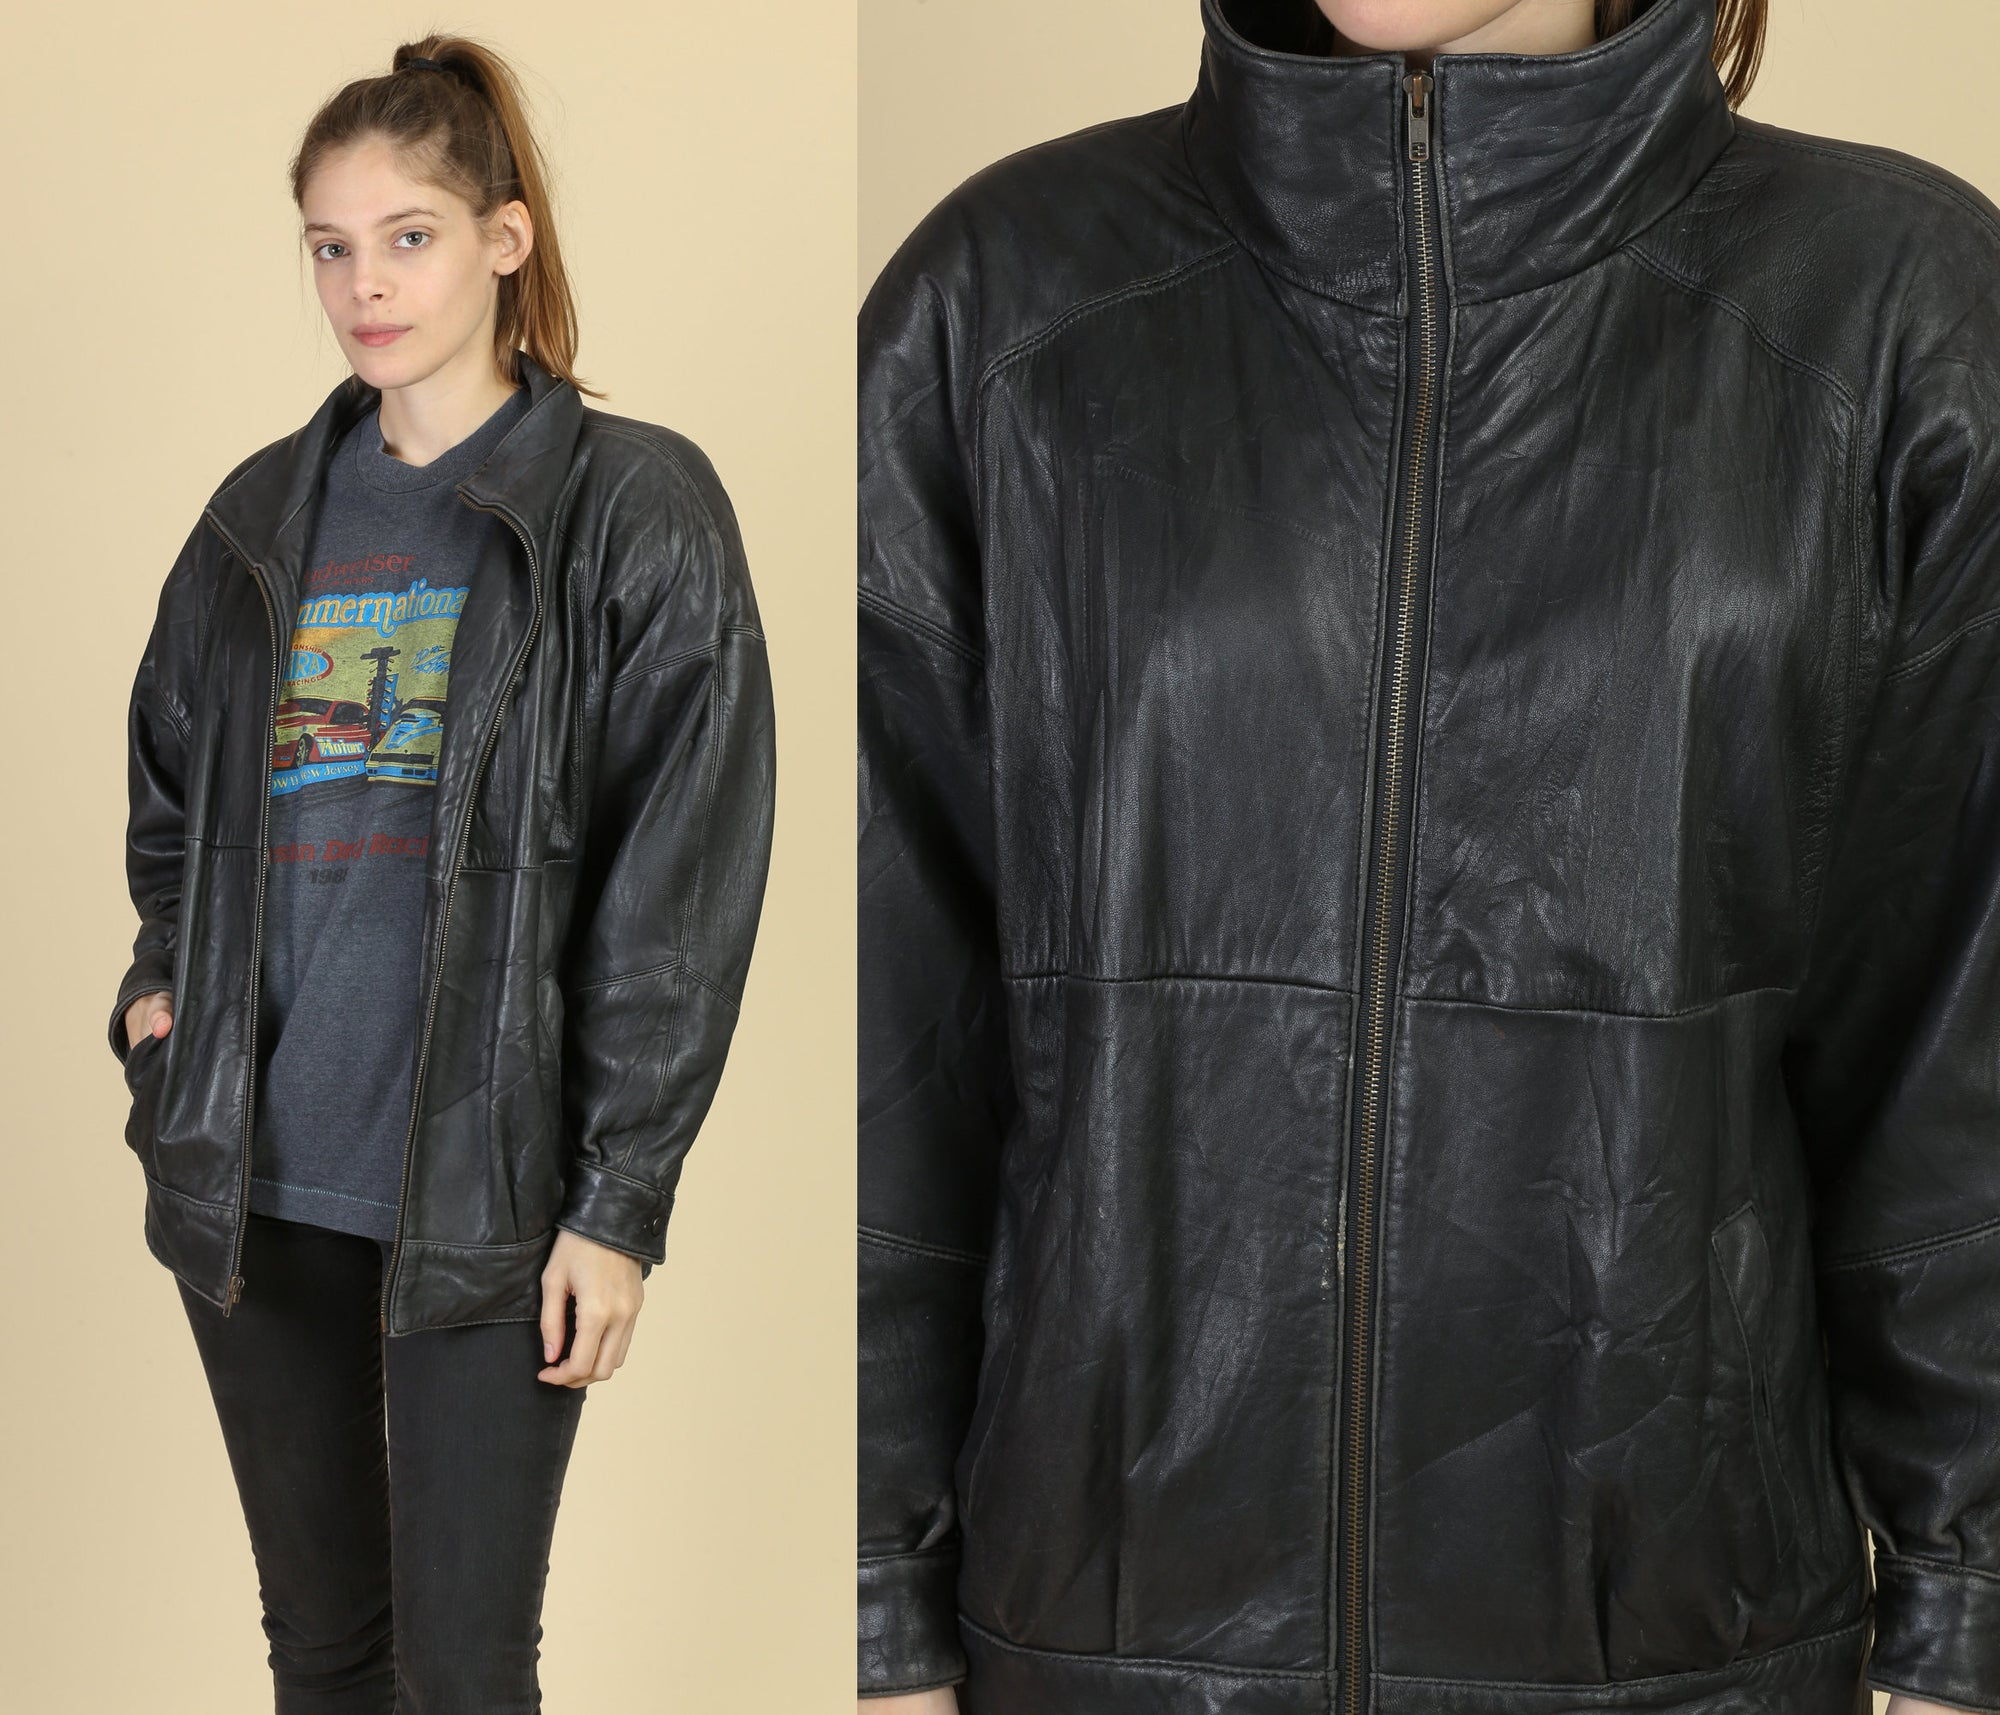 80s Leather Jacket - Men's Small